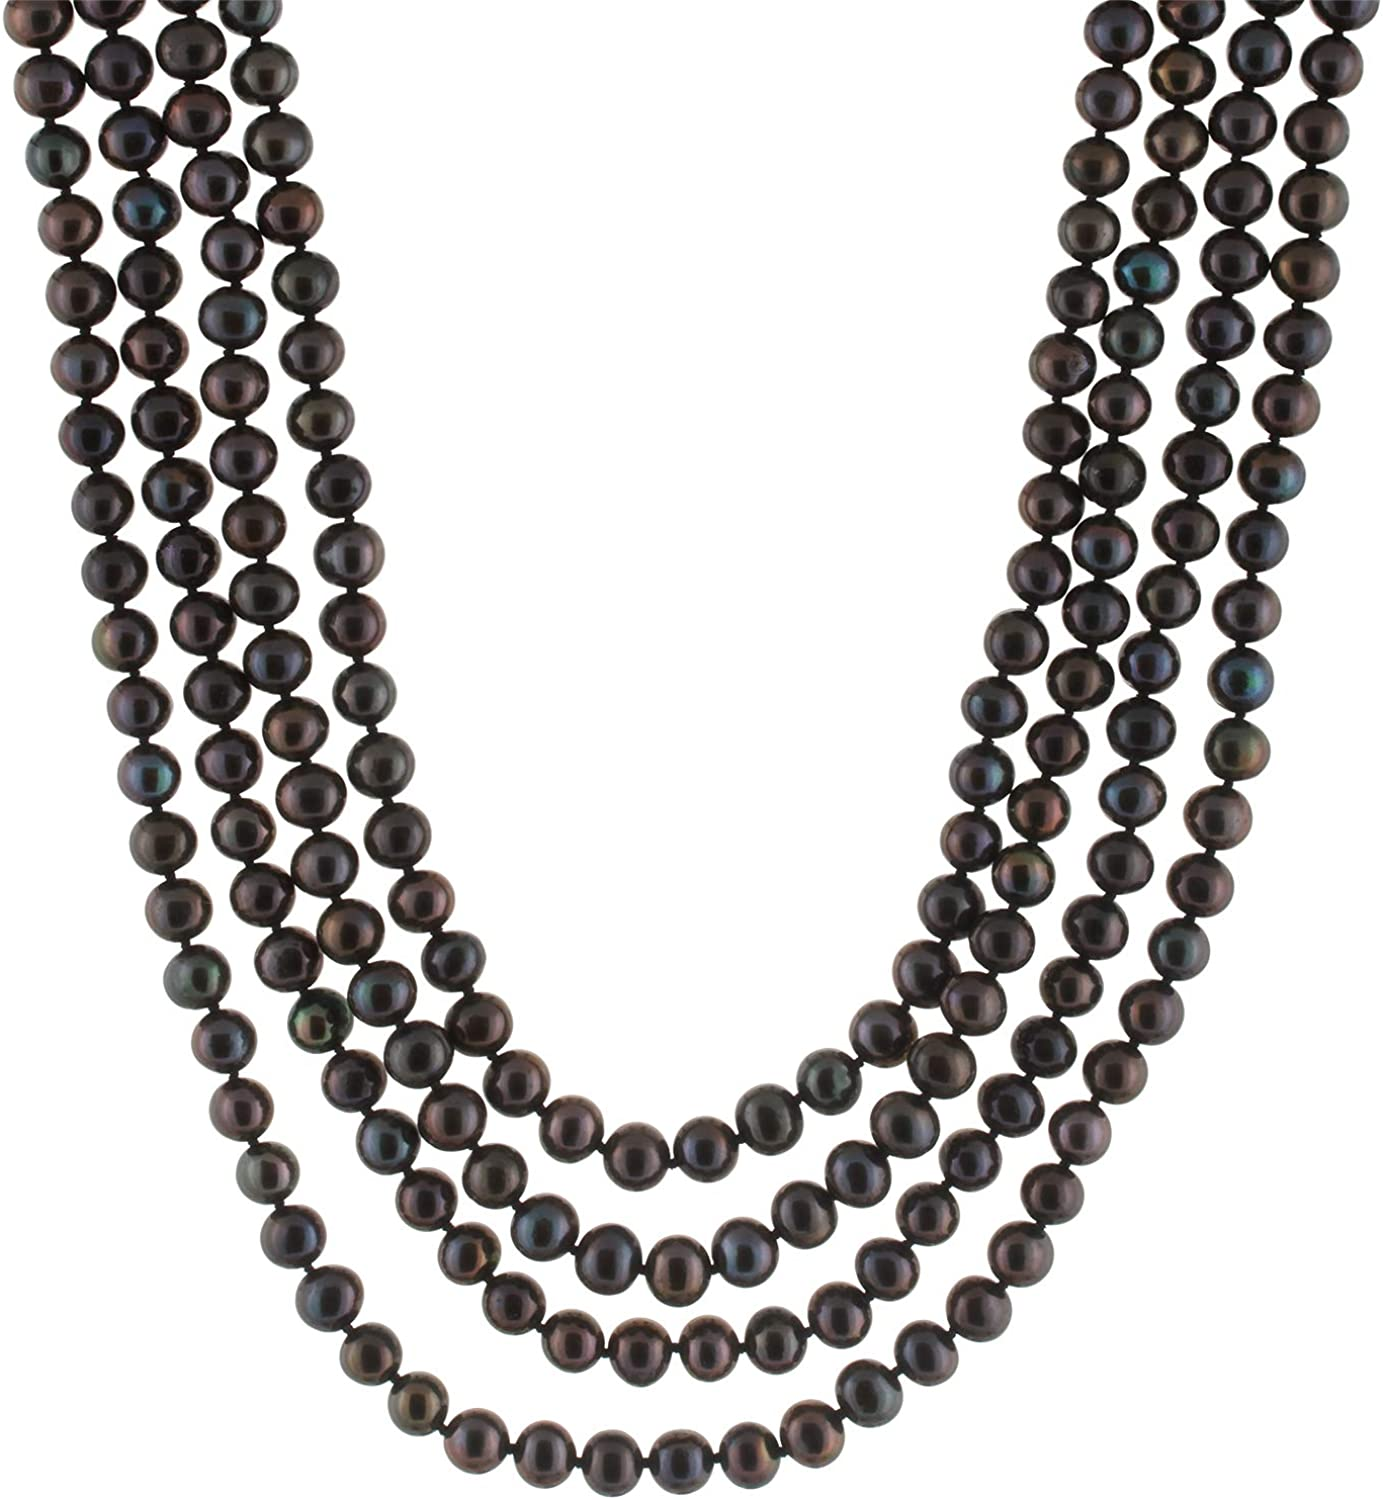 SPLENDID PEARLS Handpicked A Quality 7-8mm Freshwater Cultured Pearl Strand Endless 100